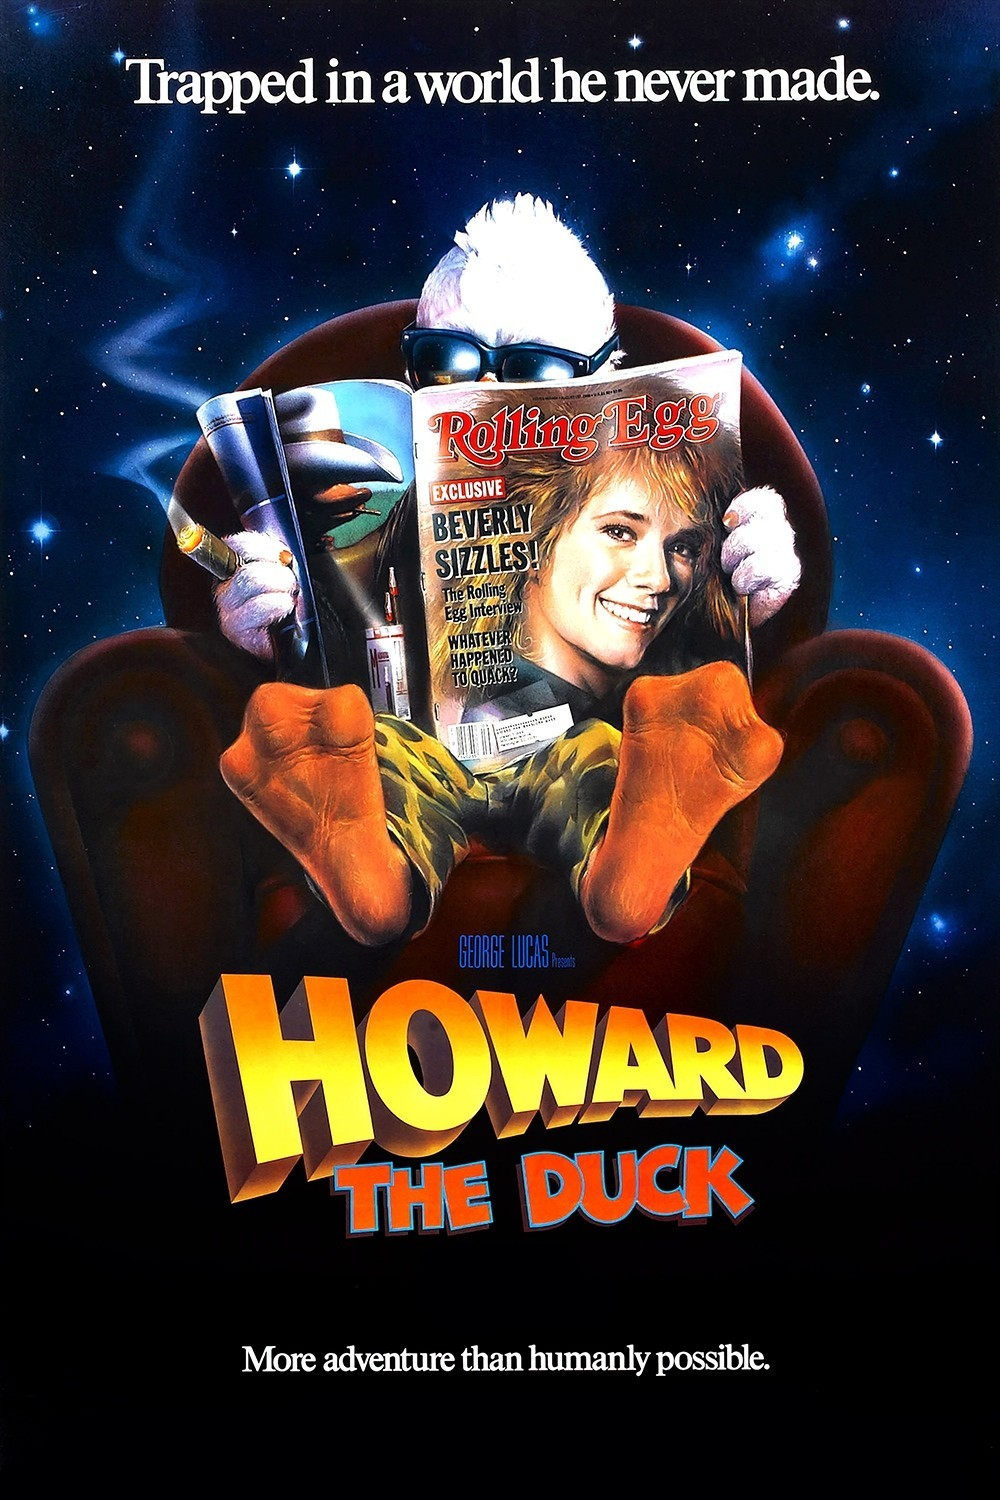 Howard The Duck Movie Poster and Howard the Duck   The